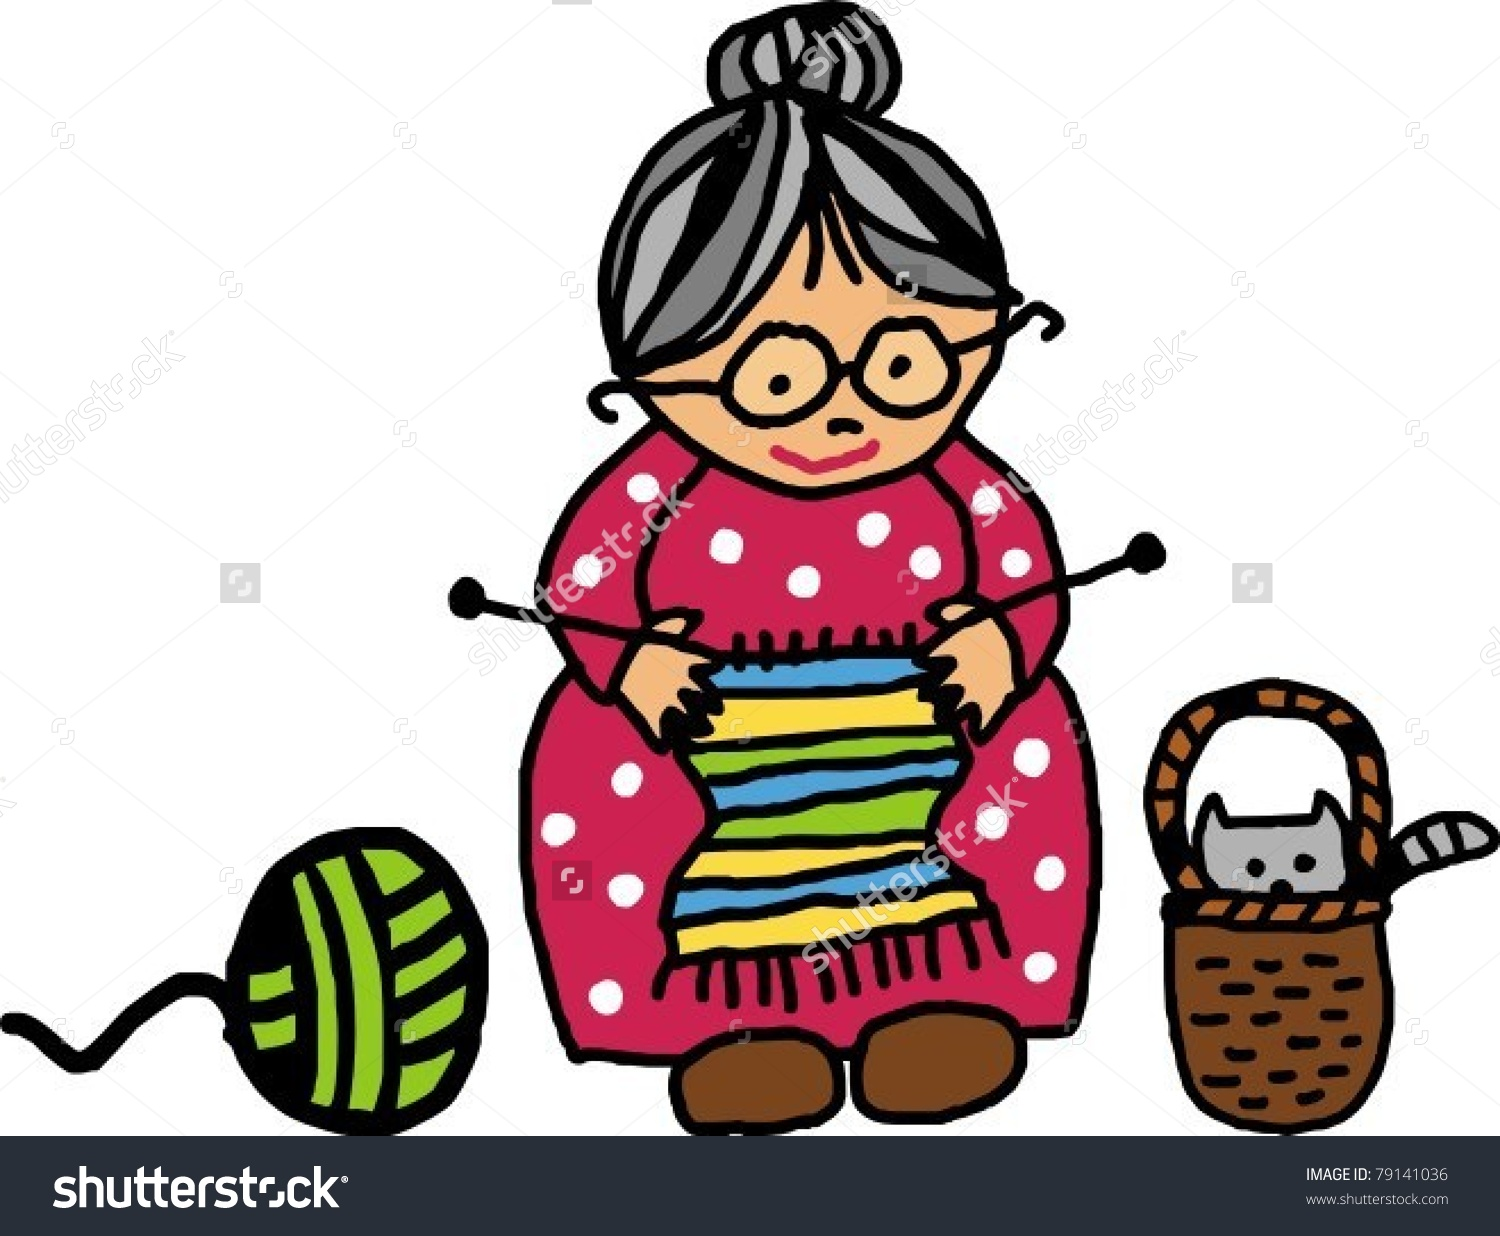 1500x1236 Knitting Grandma Clipart, Explore Pictures